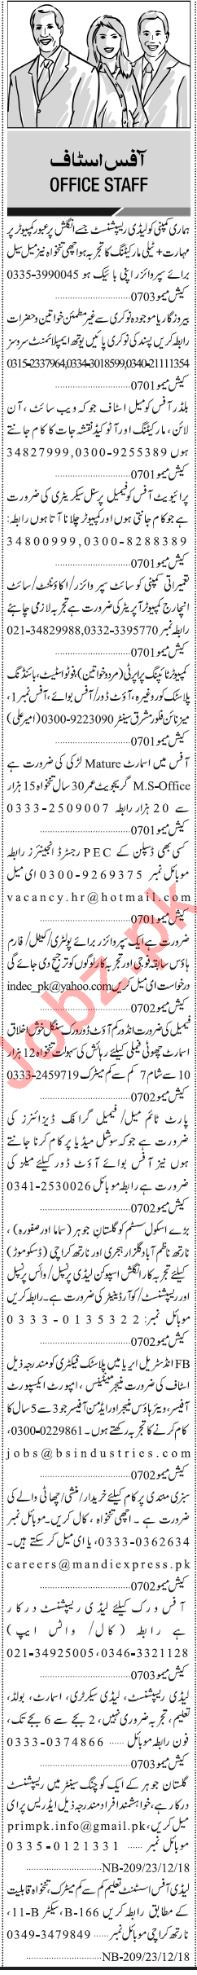 Jang Sunday Classified Ads 23rd Dec 2018 for Office Staff